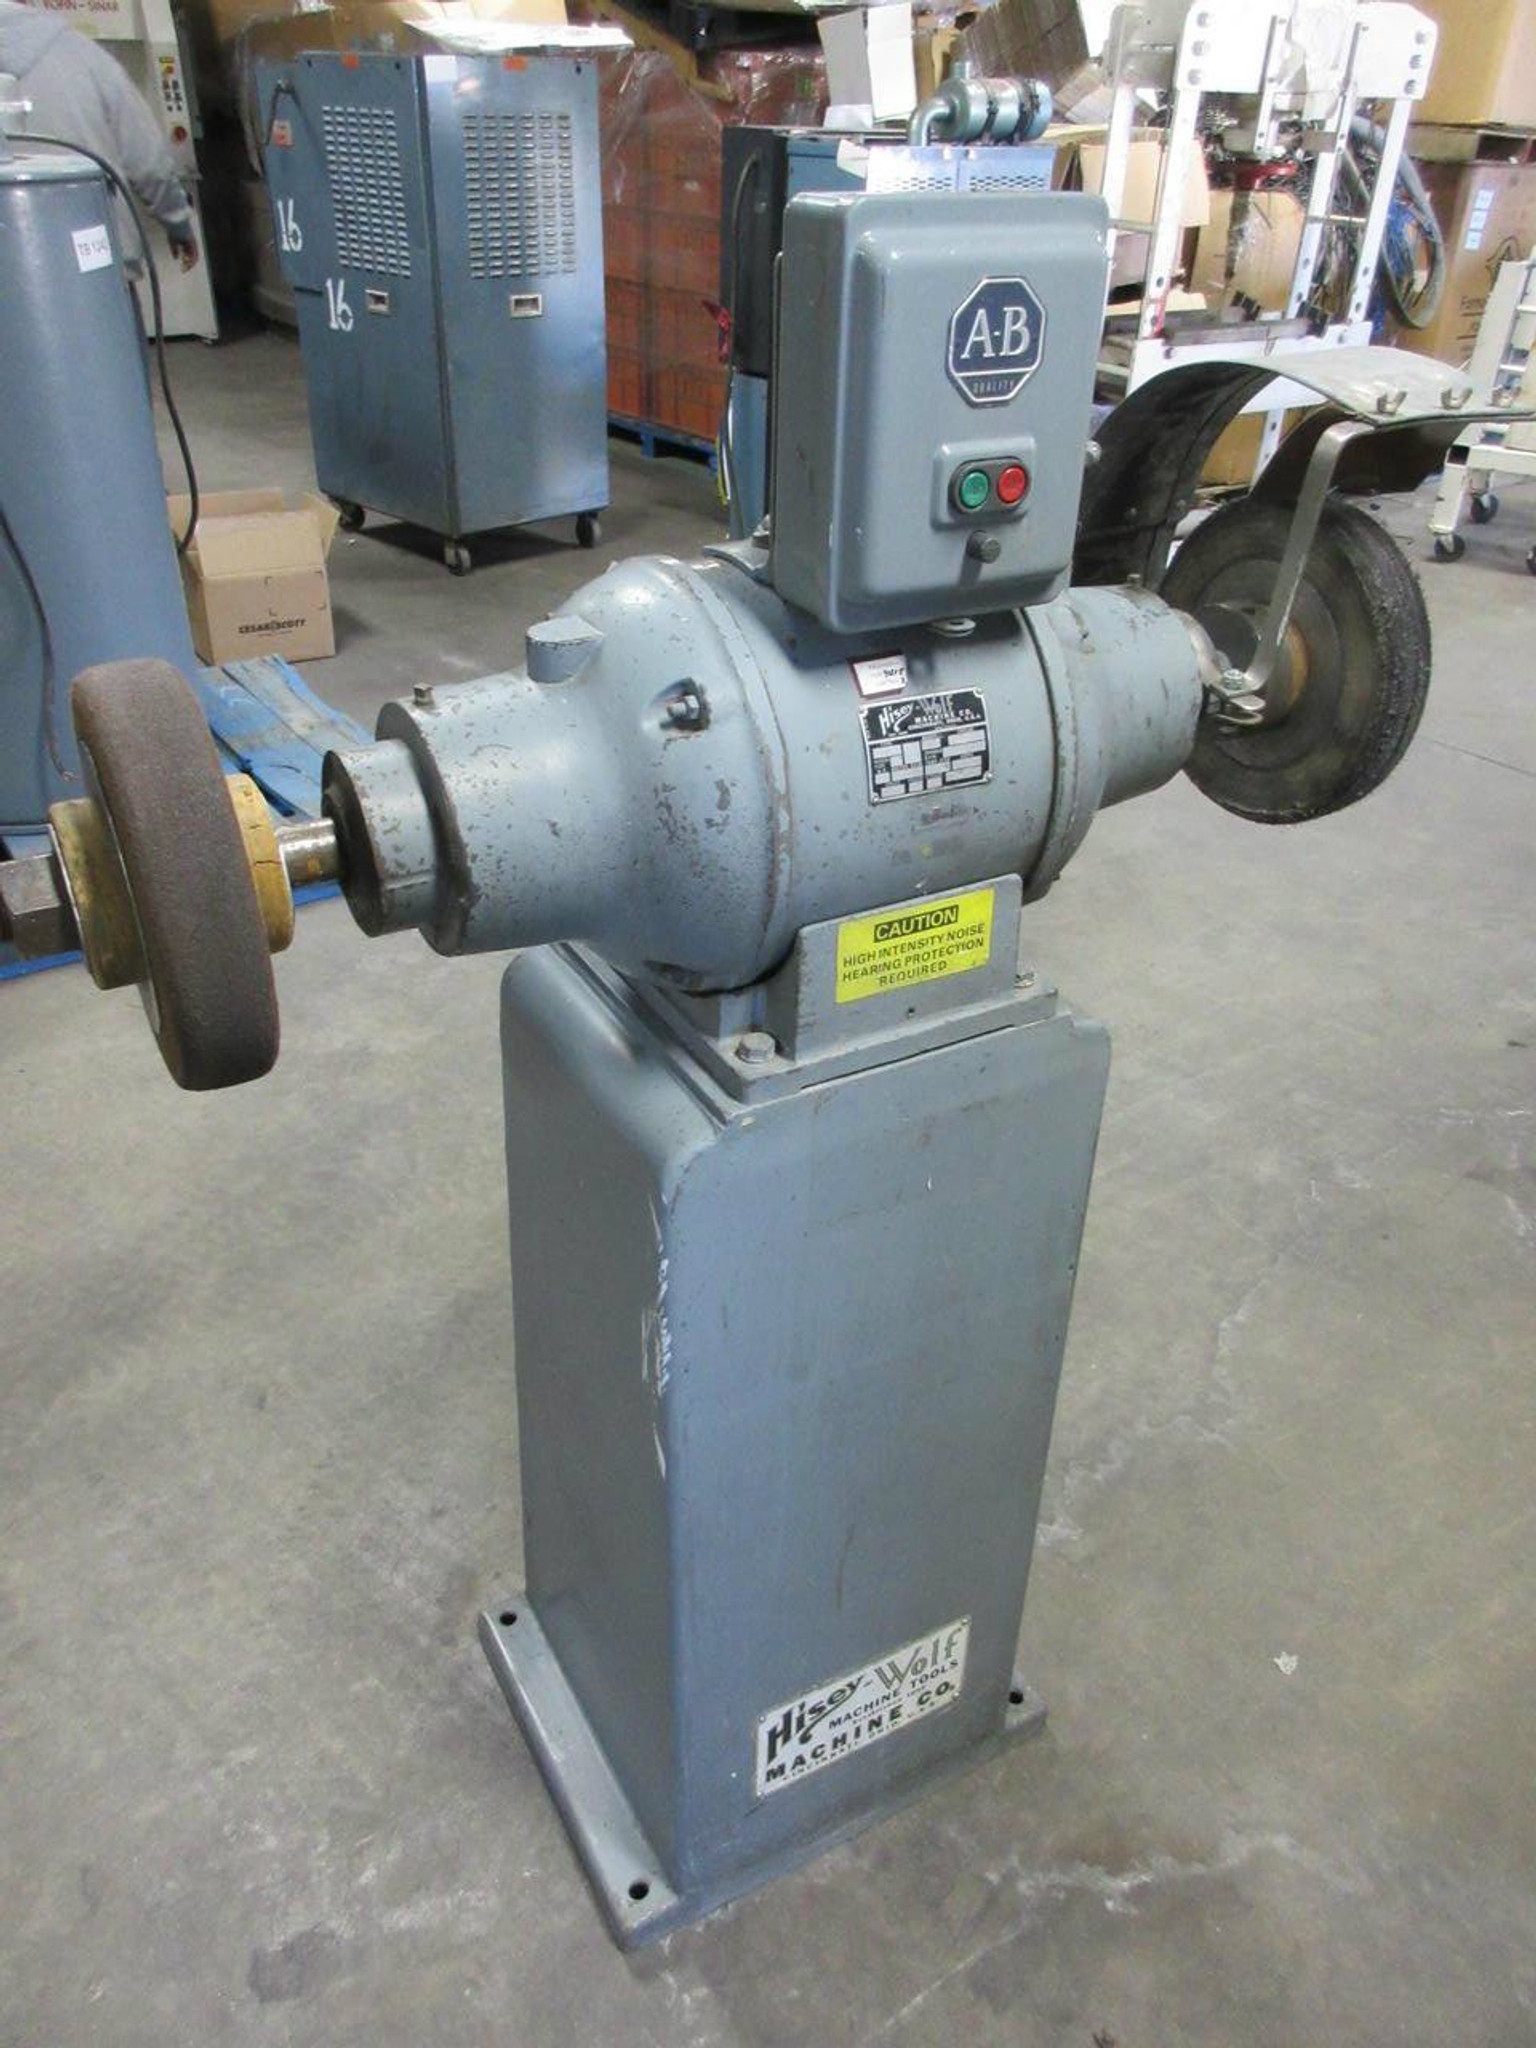 Phenomenal Hisey Wolf 6 4H0A 2 Hp Commercial Bench Grinder Uwap Interior Chair Design Uwaporg